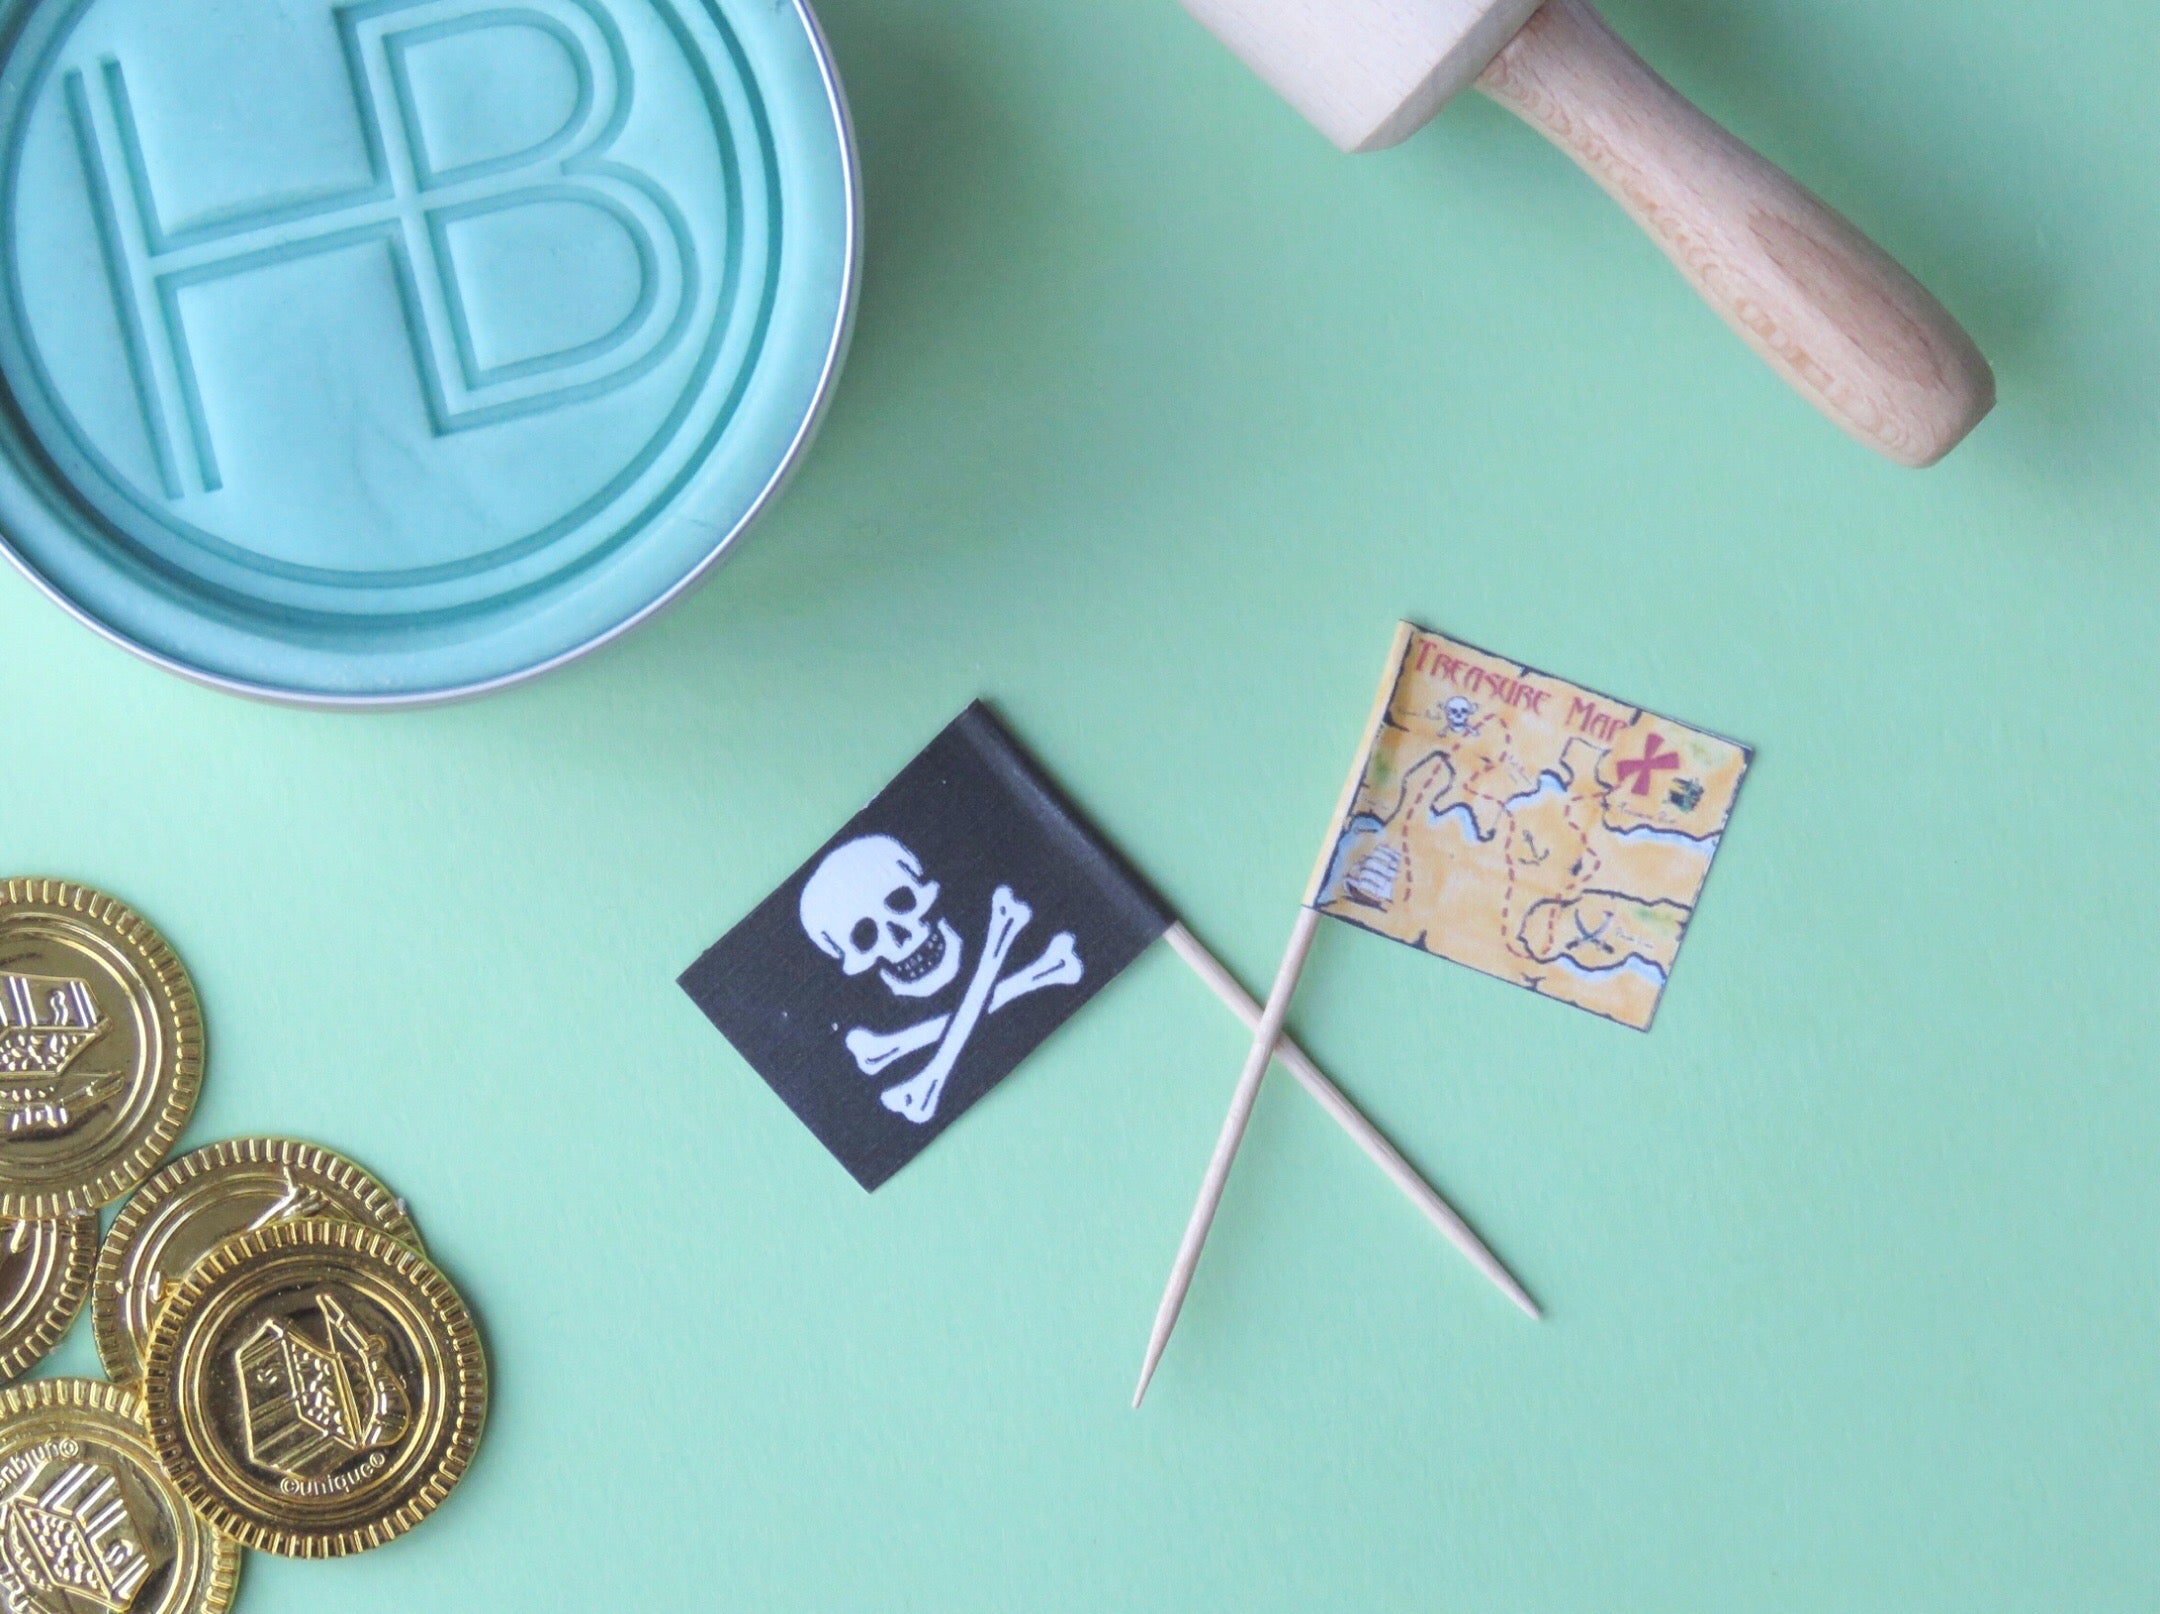 Pirate 'Biscuit Making' Box